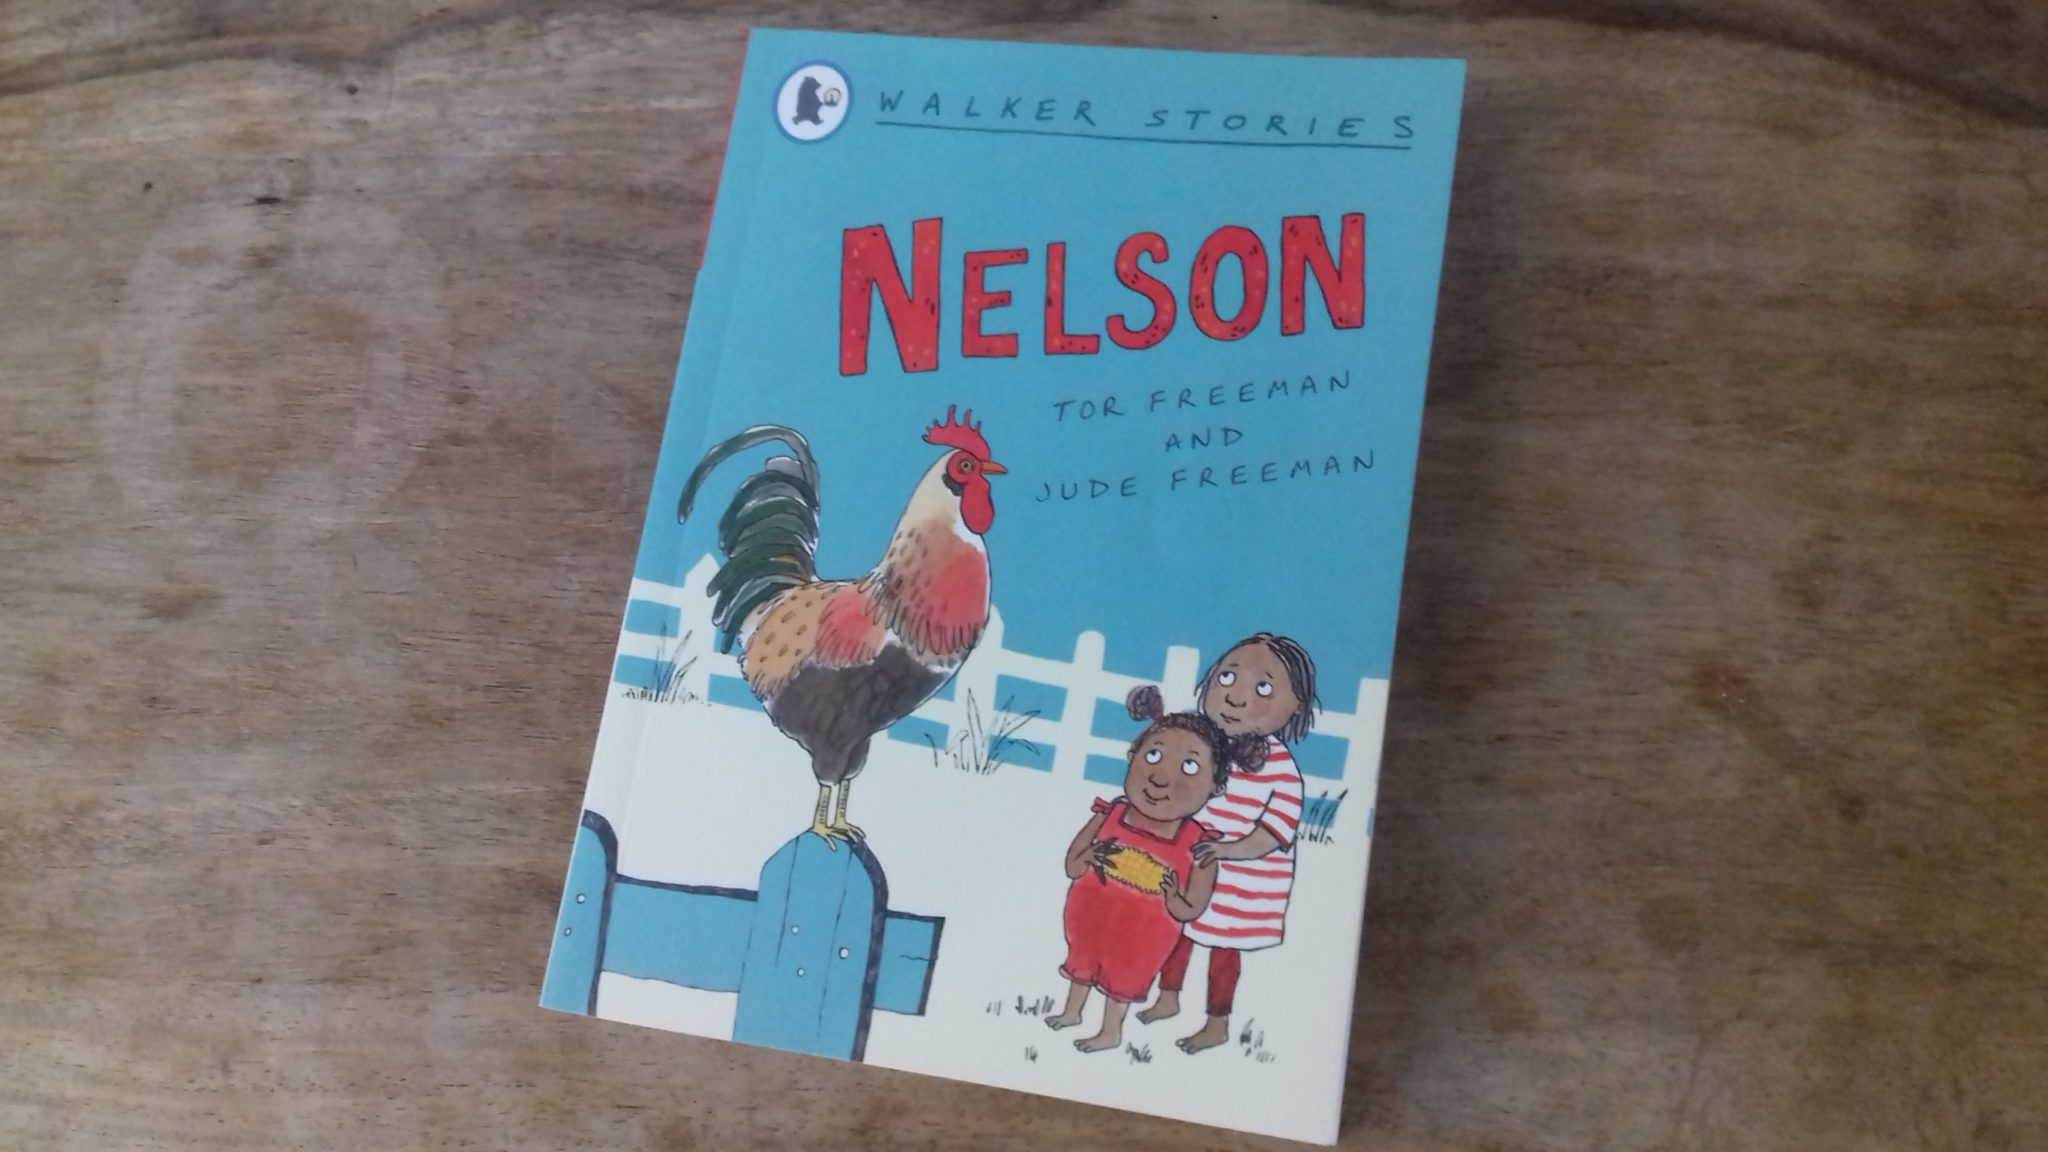 Nelson - Looking for multicultural books for your children? This list features 25+ of the best diversity books about race and culture for the kids in your family or your classroom.